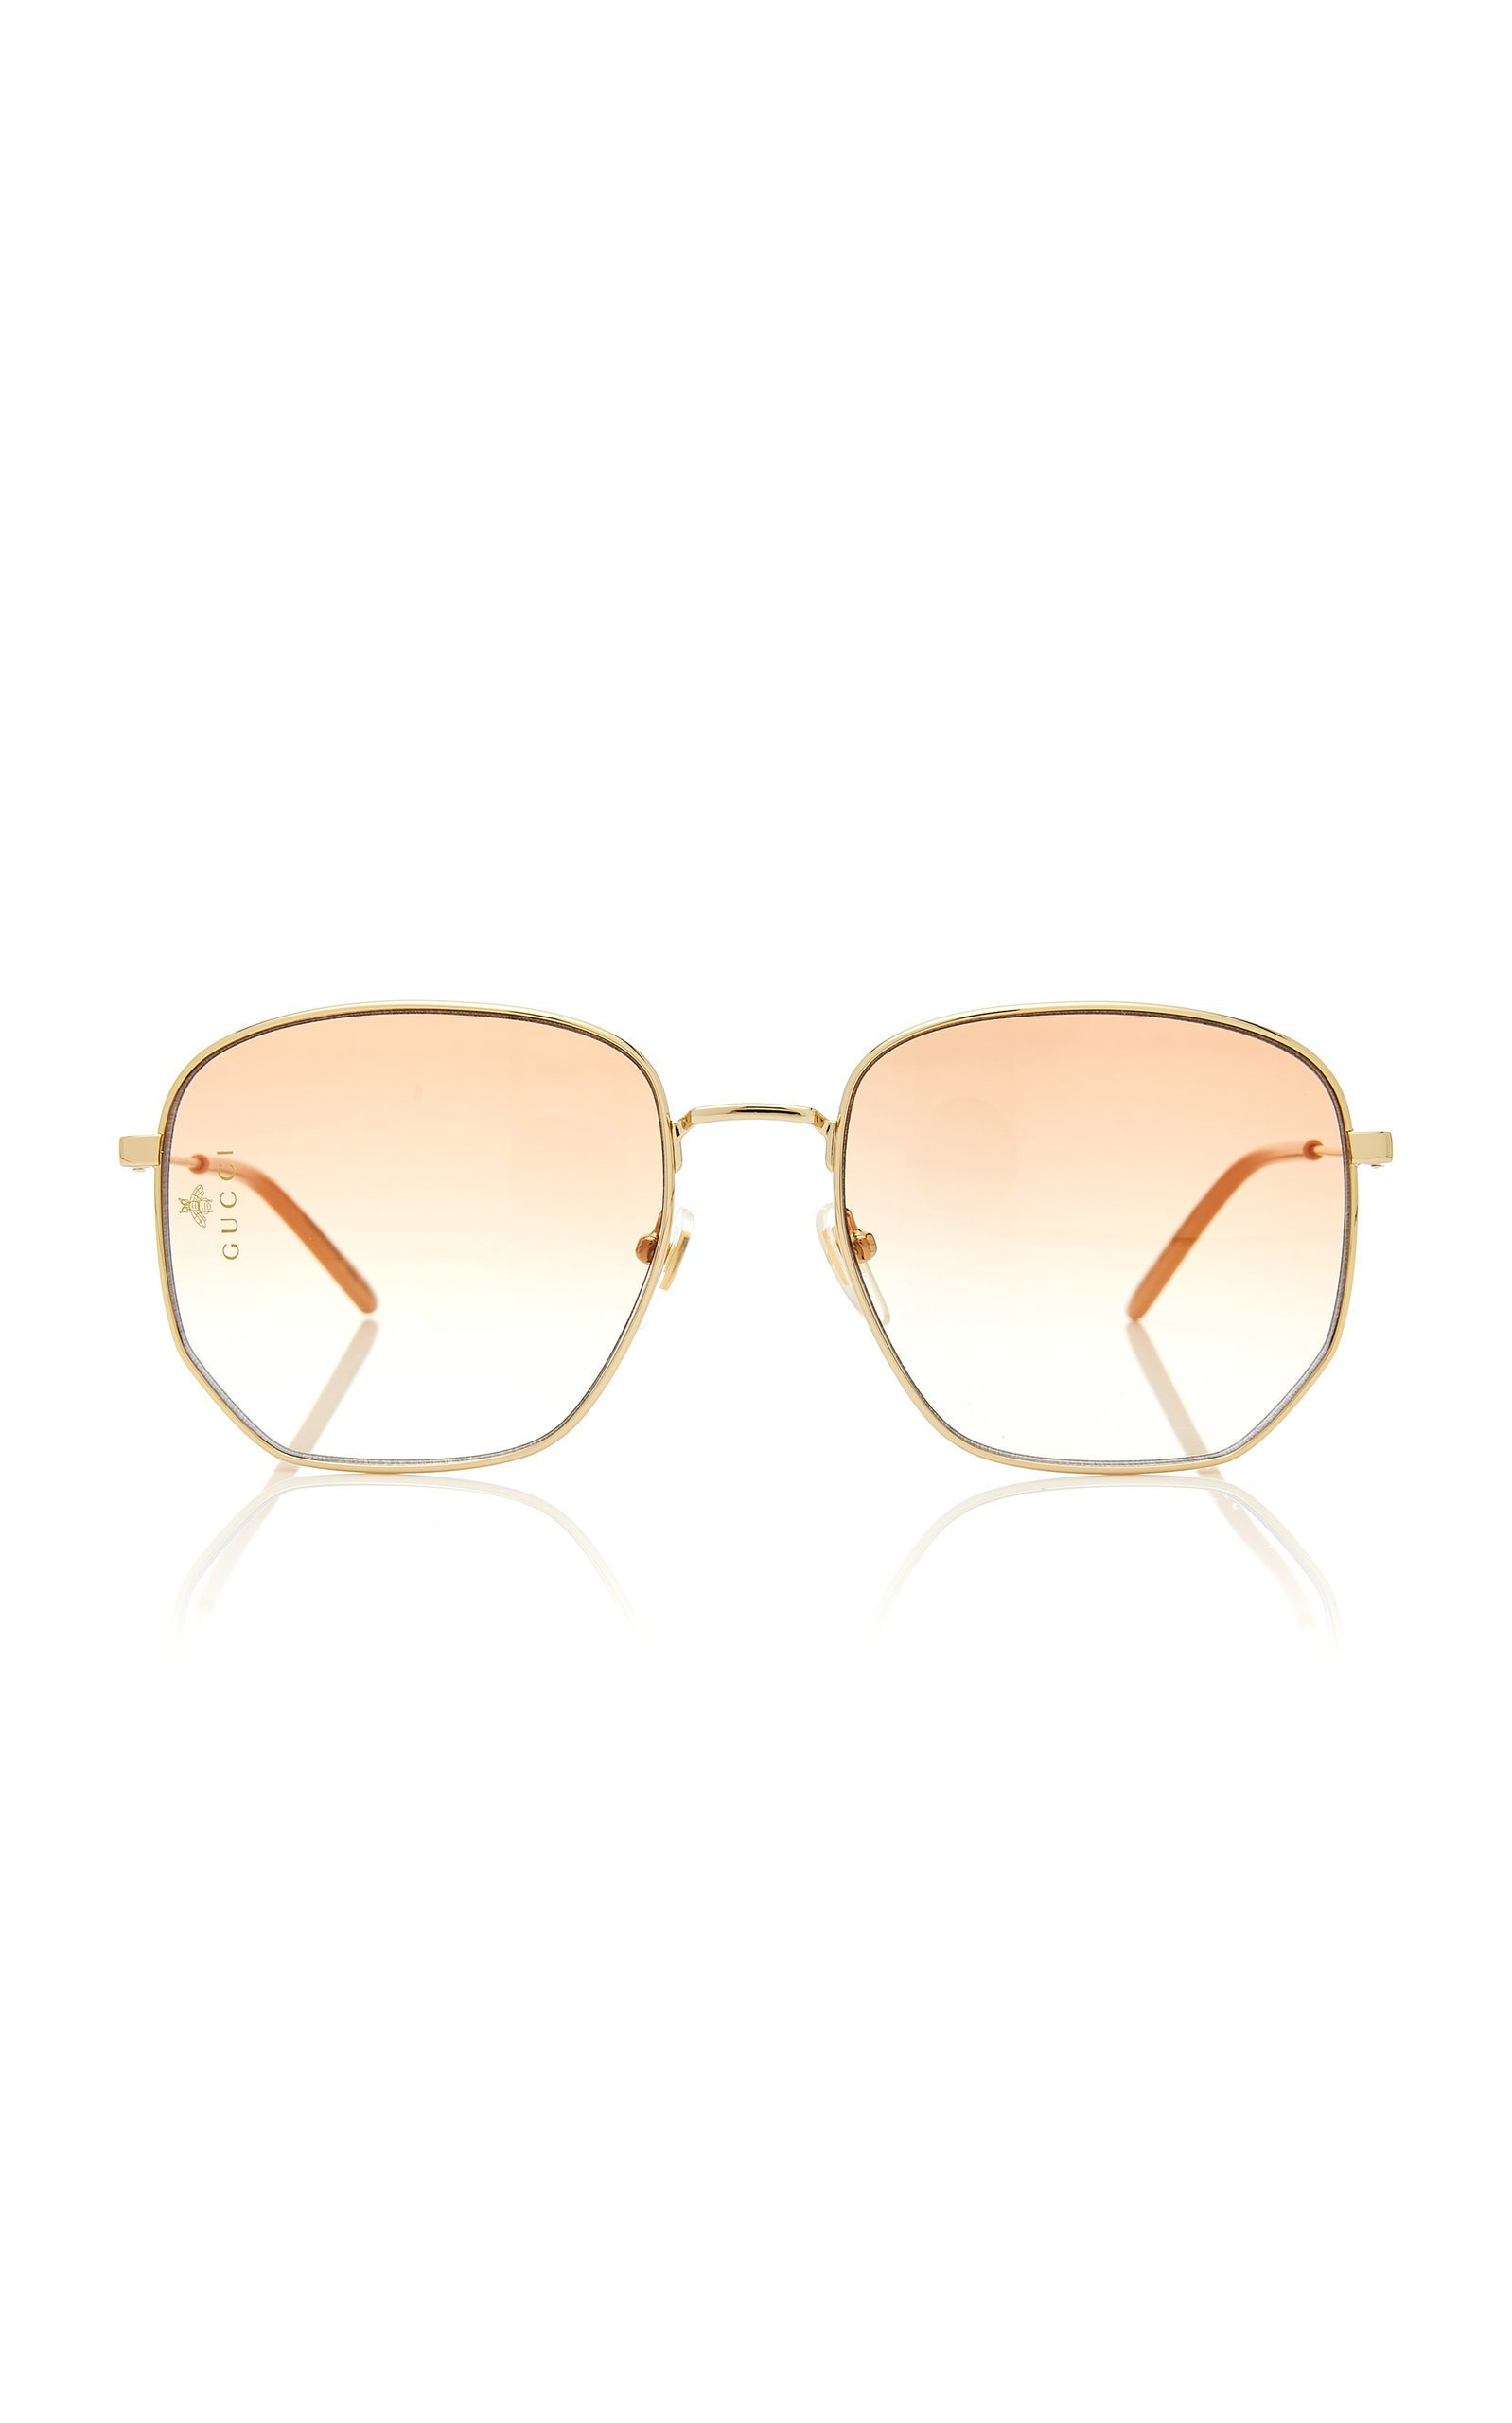 Gucci Sunglasses Hexagonal Gold-Tone Sunglasses